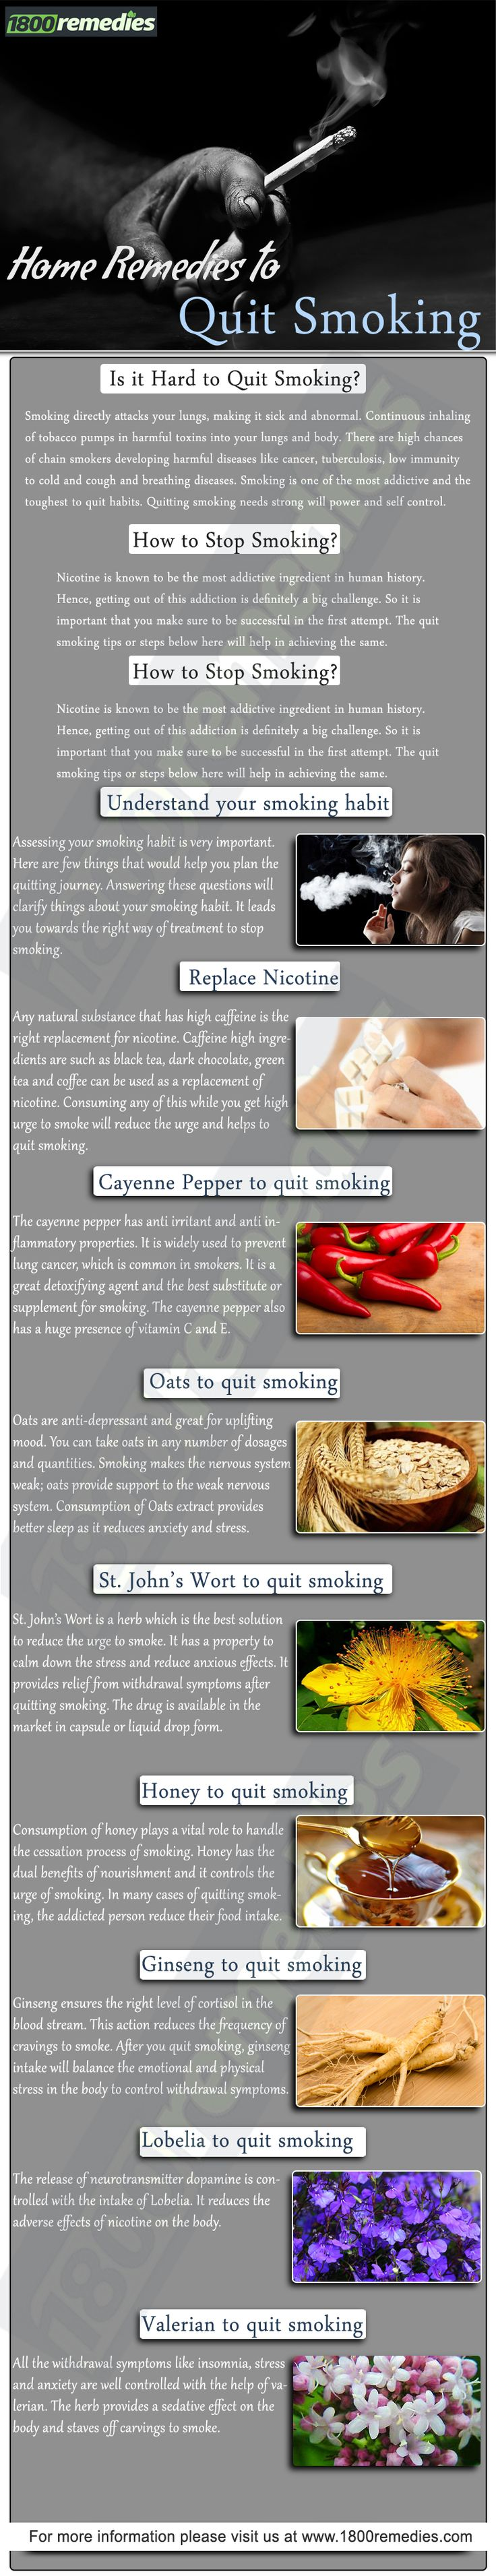 best ideas about quit smoking motivation quit the following are the effective home remedies to quit smoking naturally